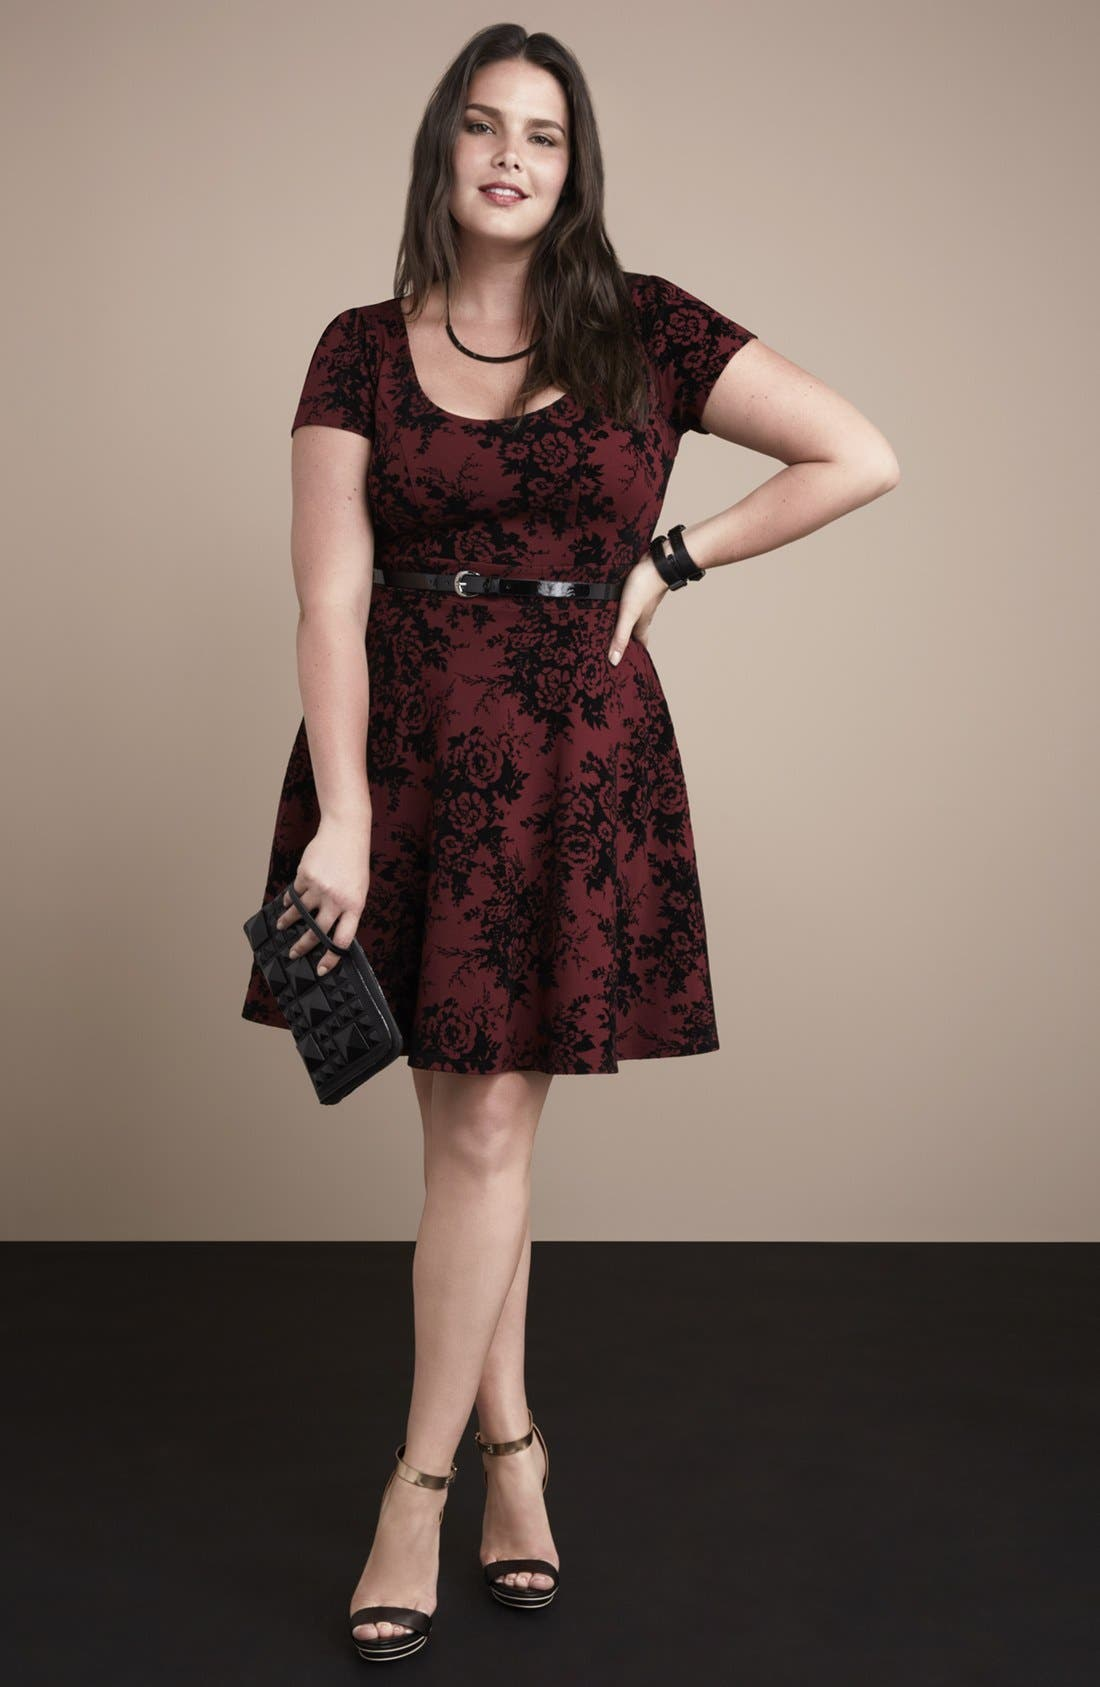 Alternate Image 1 Selected - City Chic Skater Dress & Accessories